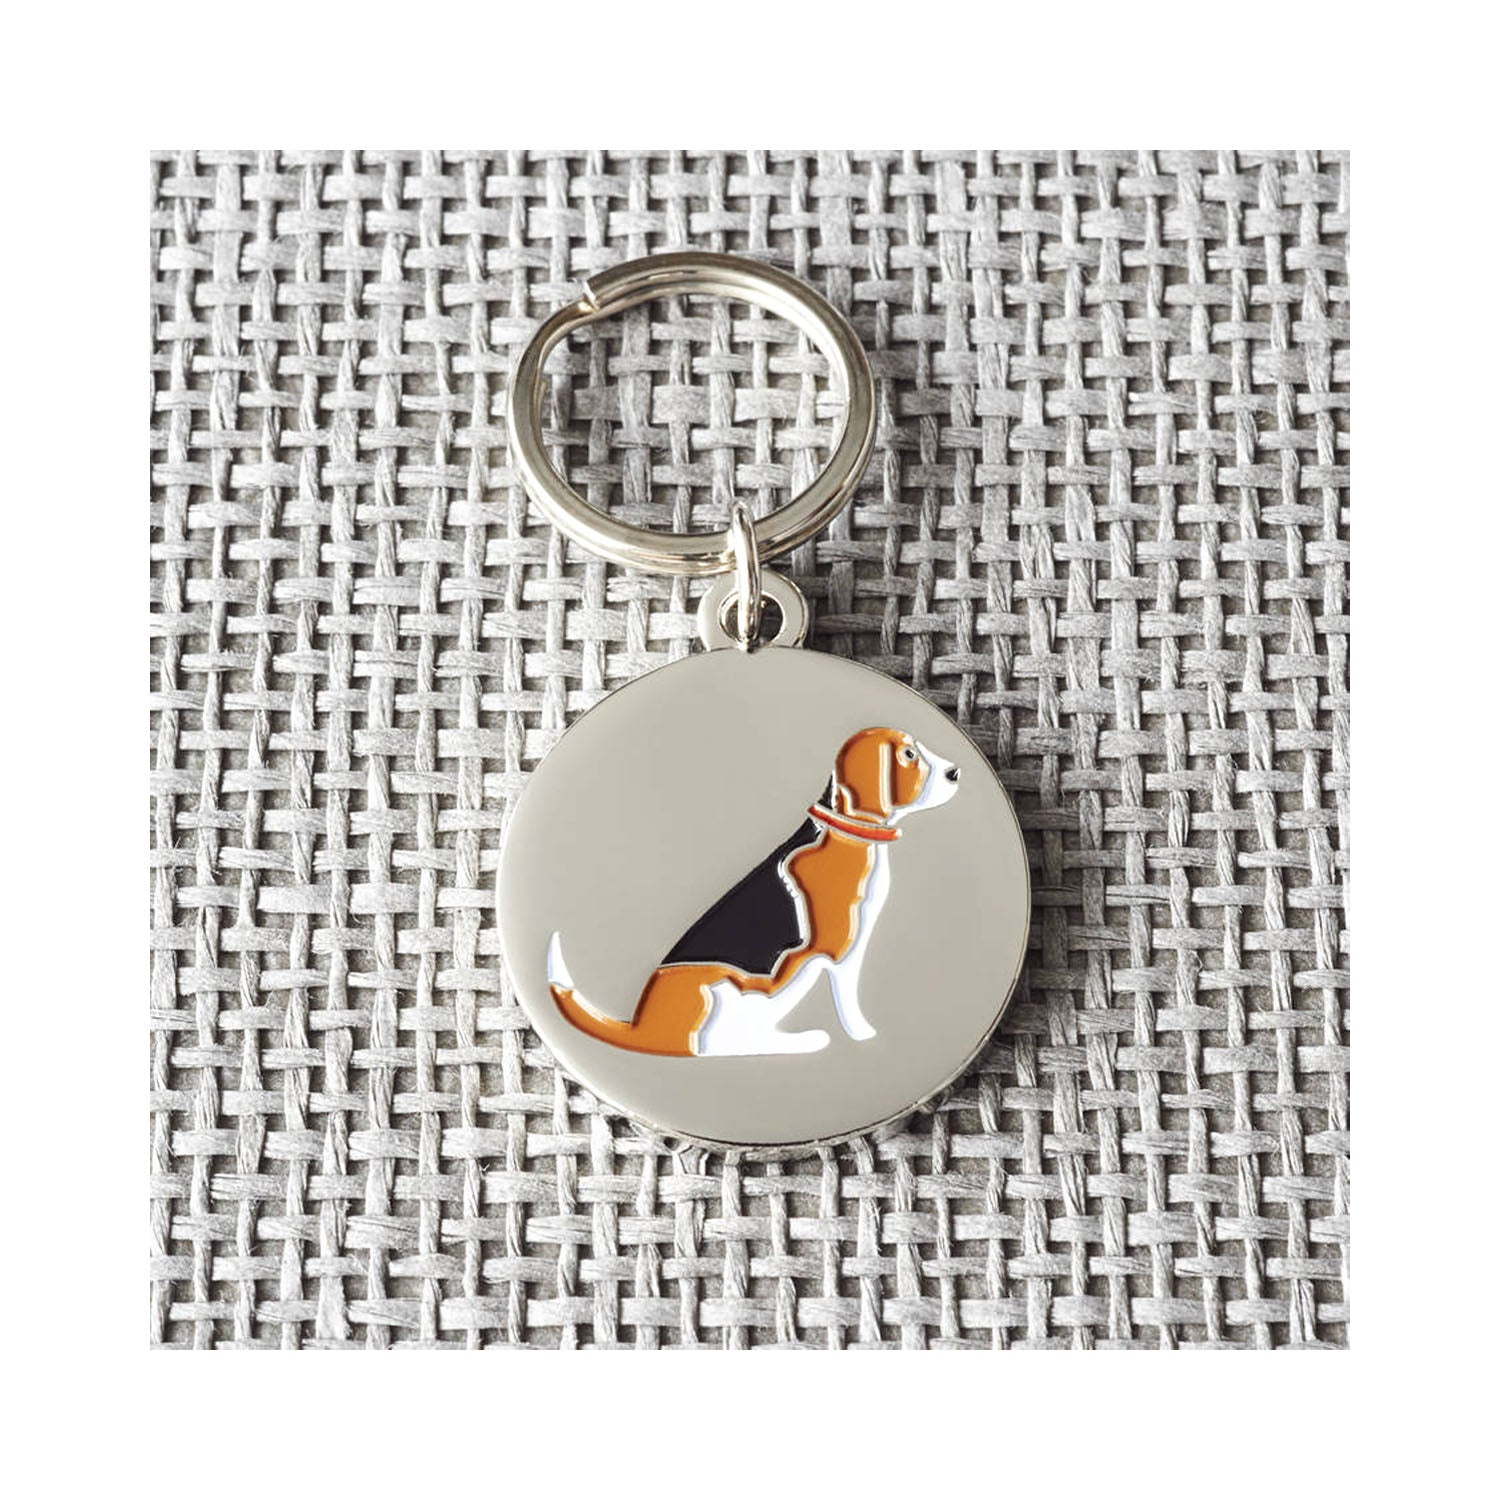 Dog Lover Gifts available at DogKrazyGifts - Rupert The Beagle Cufflink and Dog Tag Set - part of the Sweet William range available from Dog Krazy Gifts